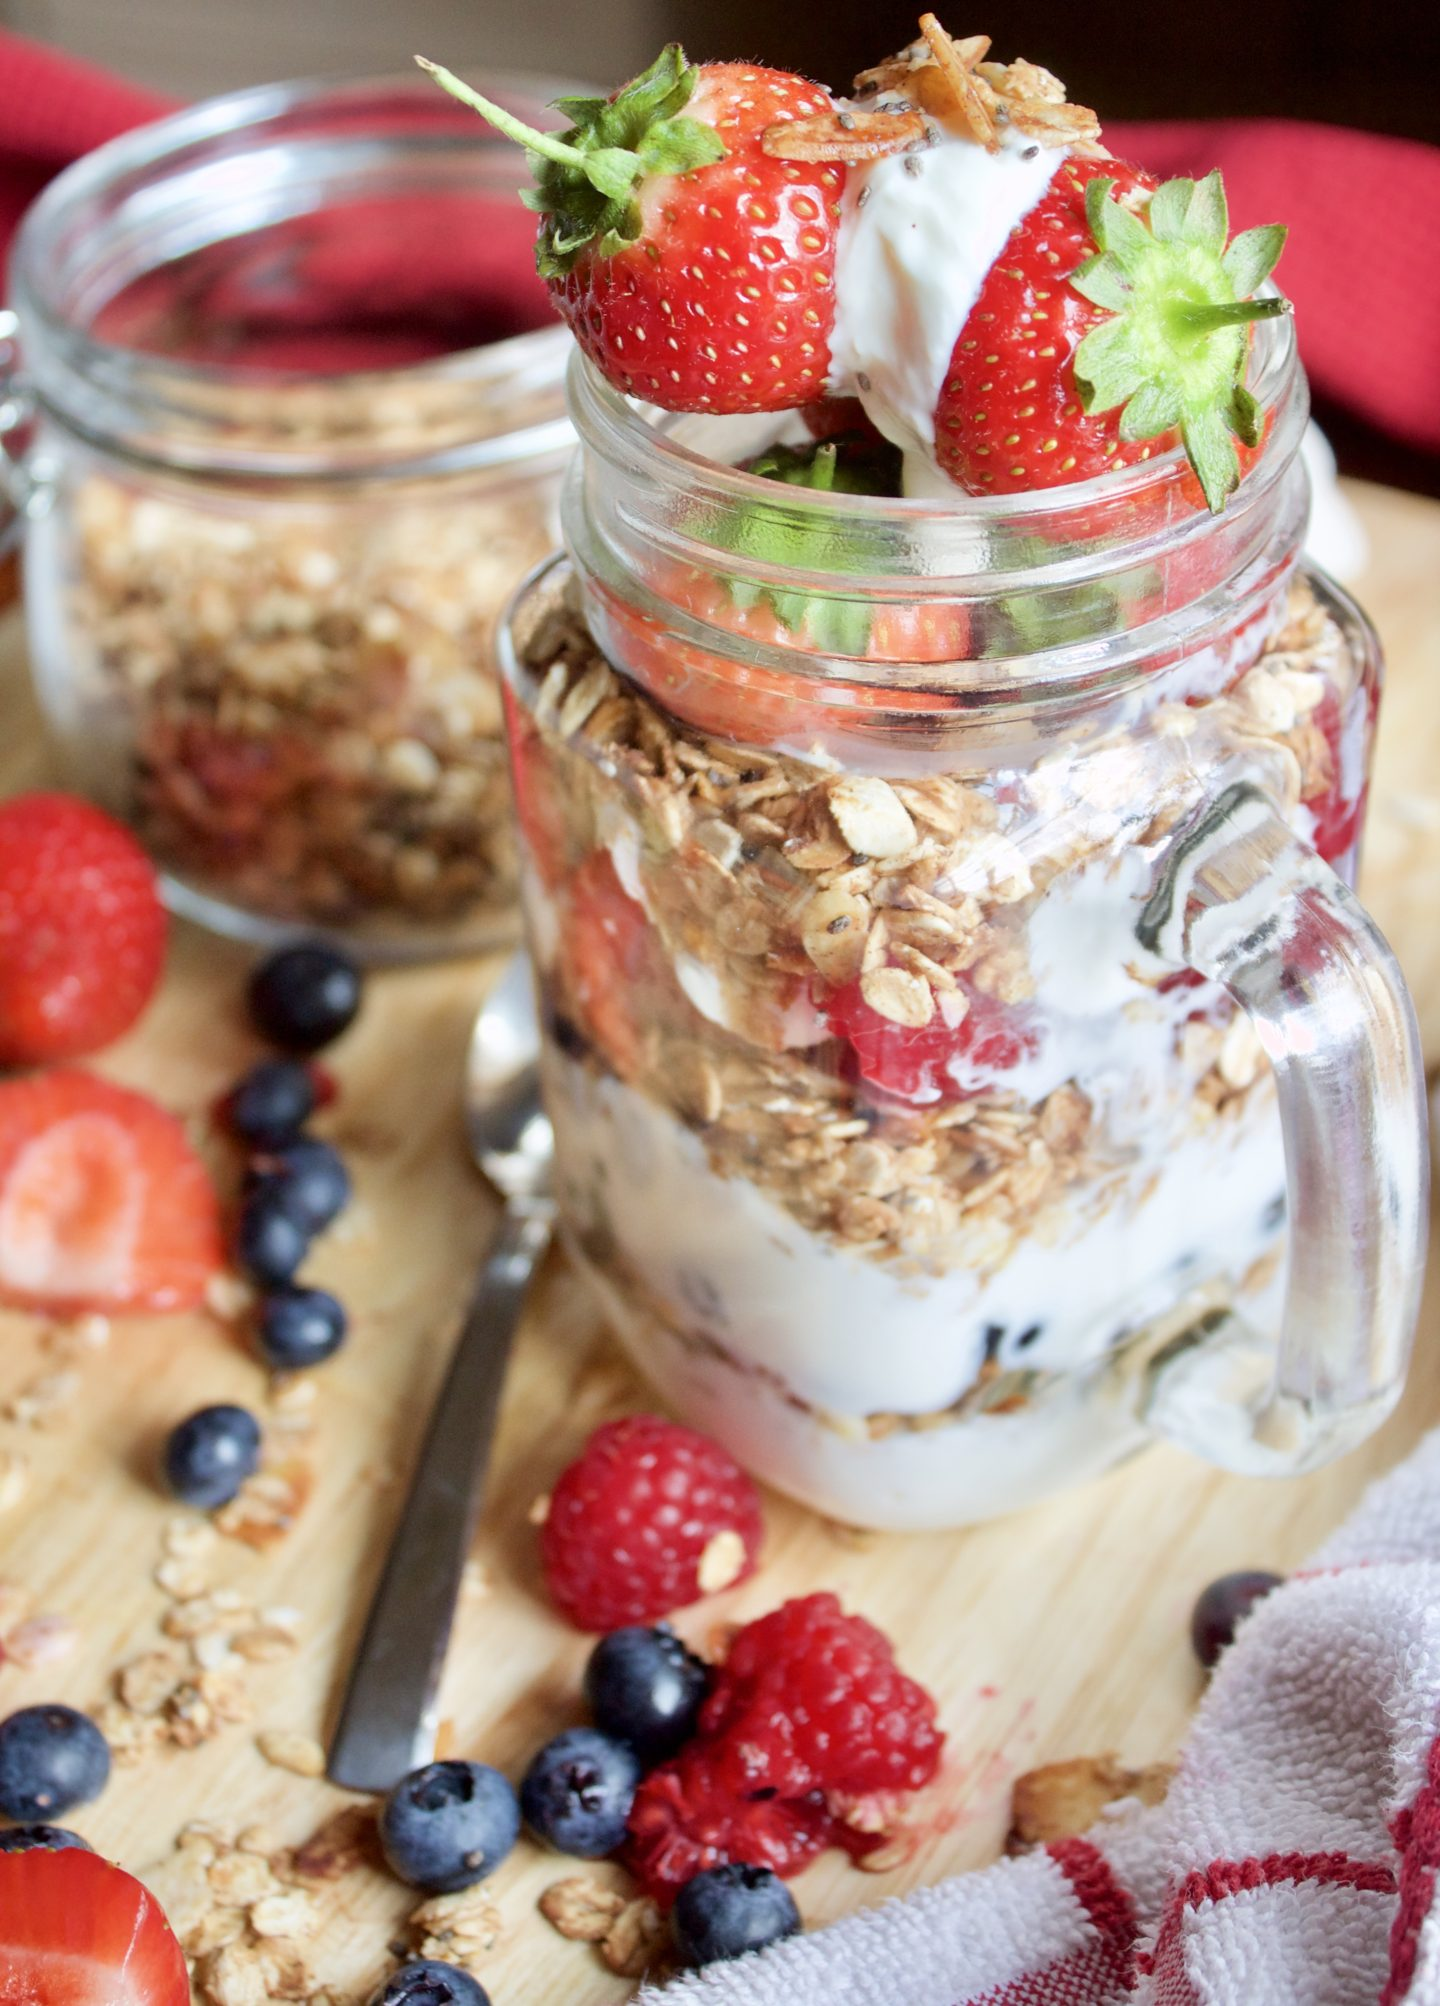 MAKE-AHEAD GRANOLA, BERRY, YOGURT PARFAIT | MEAL PREP